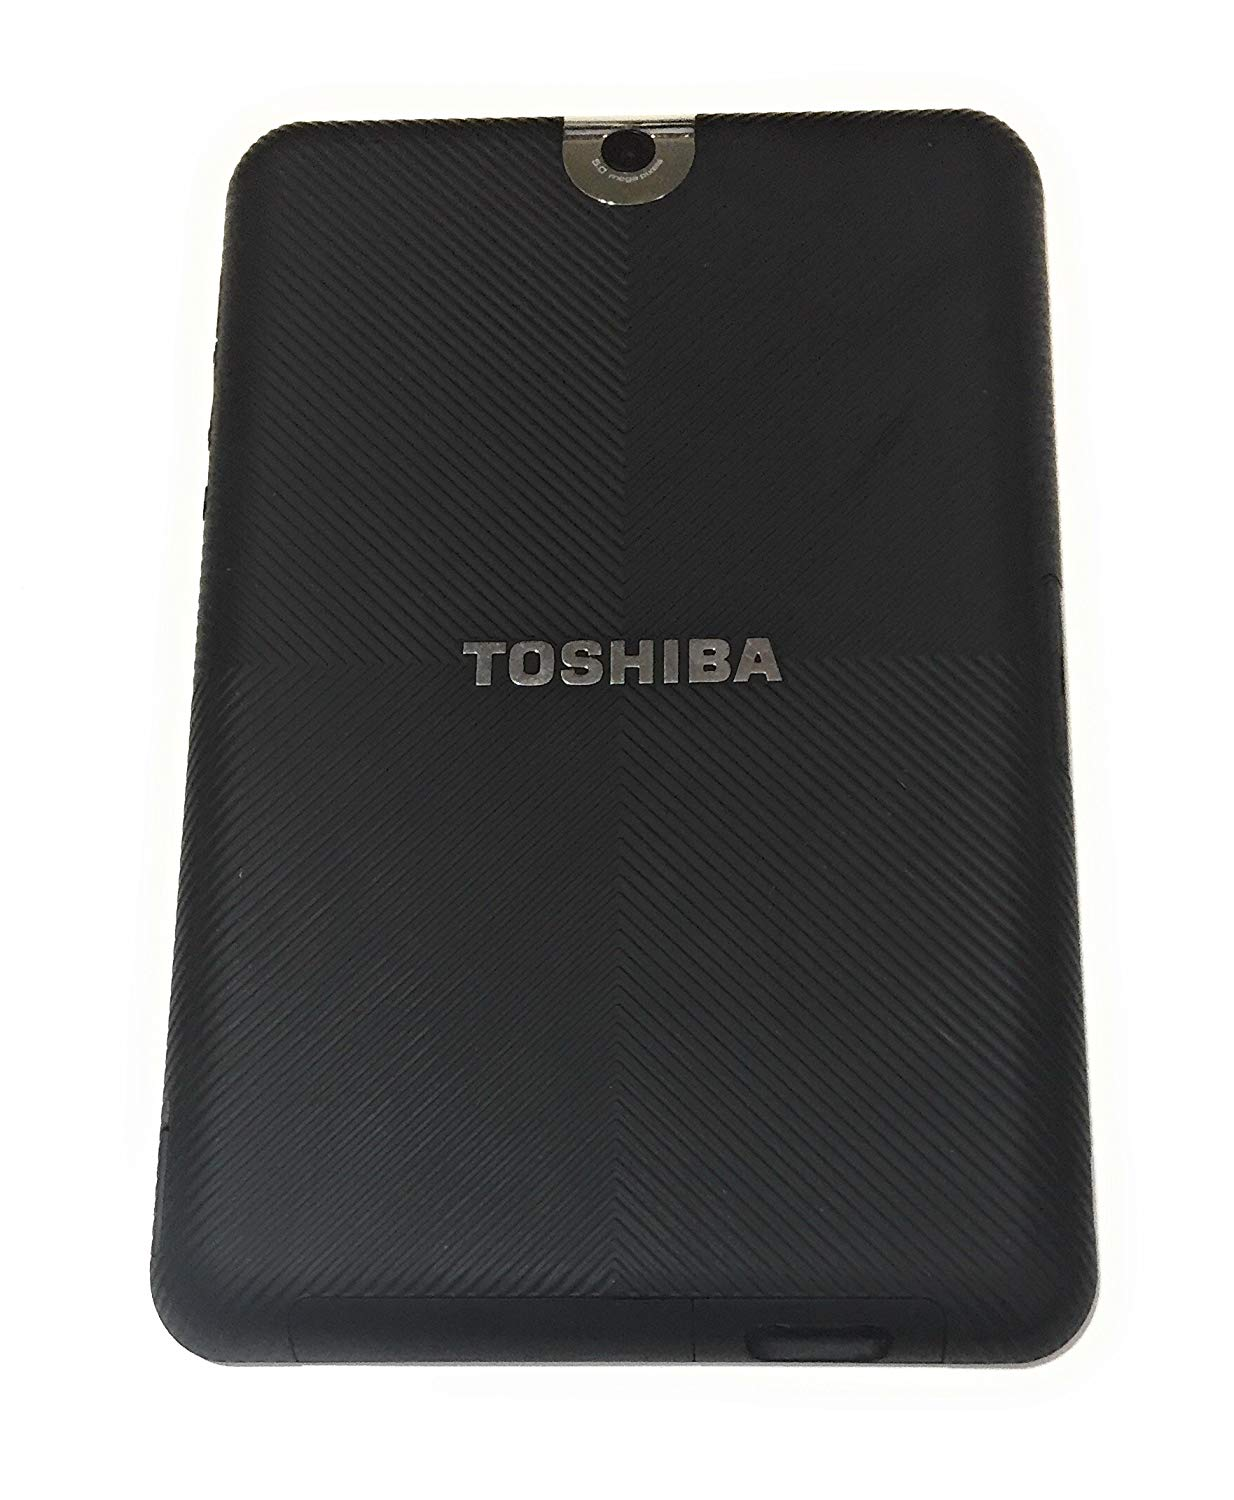 Toshiba Android Tablet